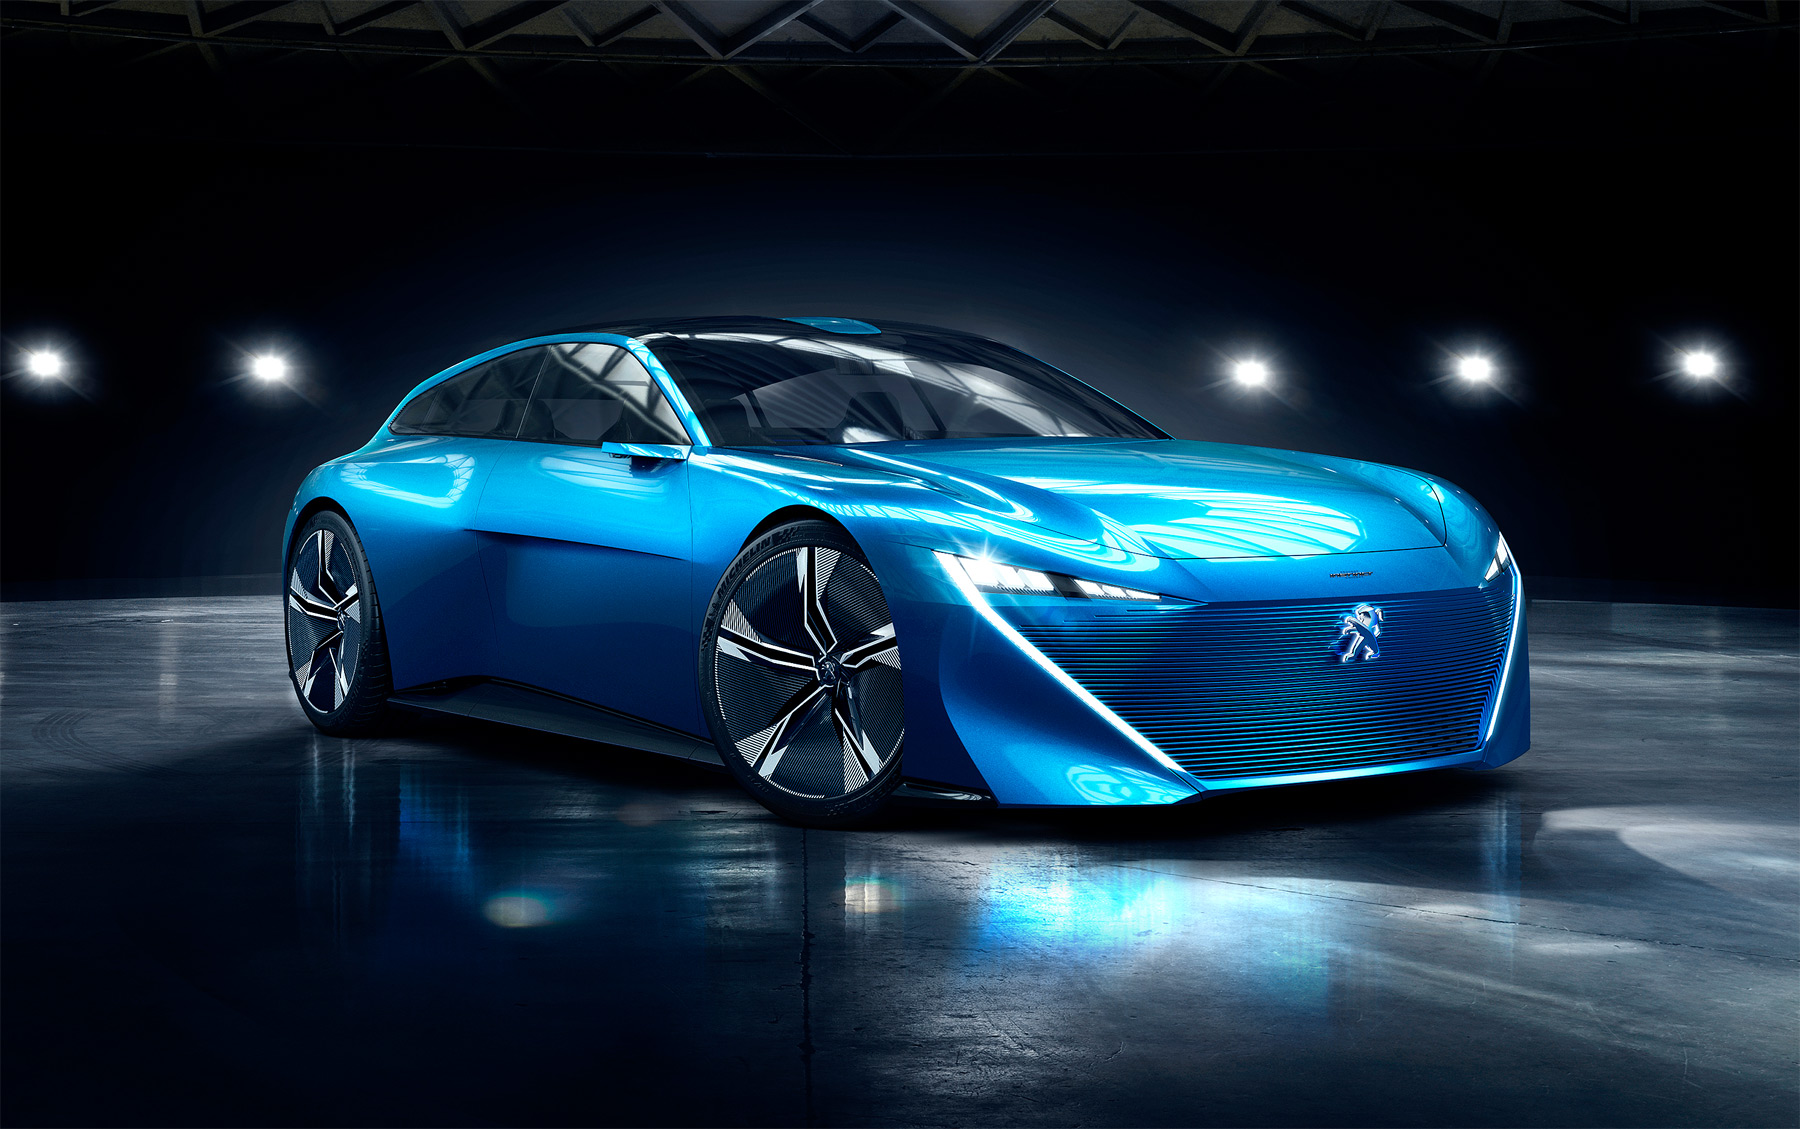 Instinct Concept From Peugeot, A PHEV With 'Autonomous' And 'Drive' Modes